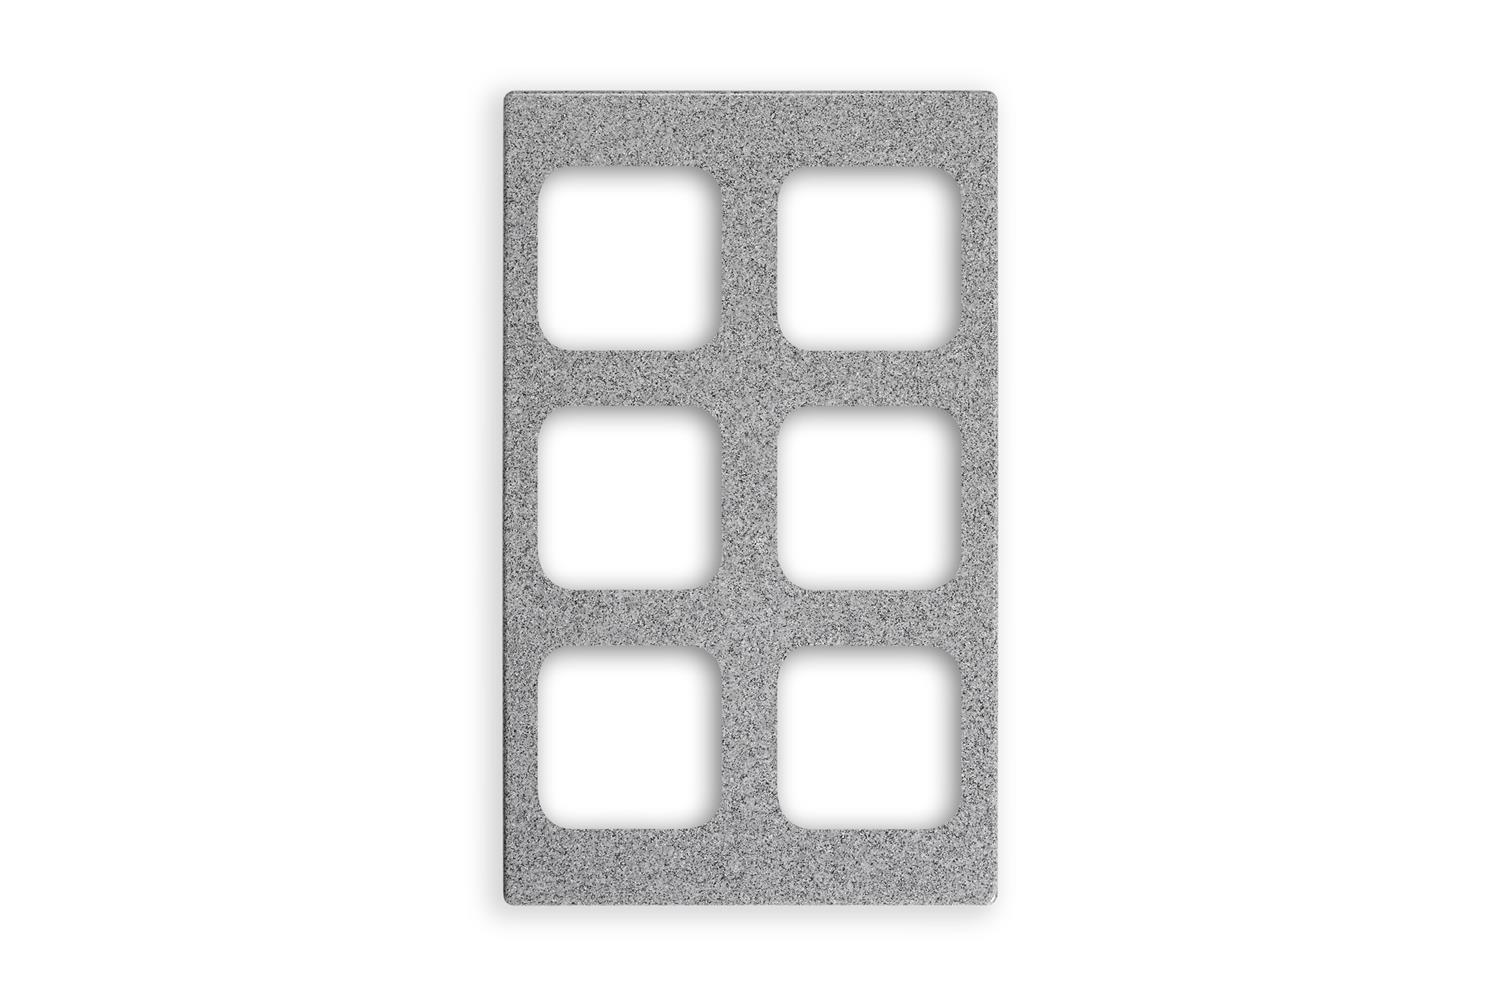 Vollrath 8244324 Miramar Resin Templates for Contemporary Pans